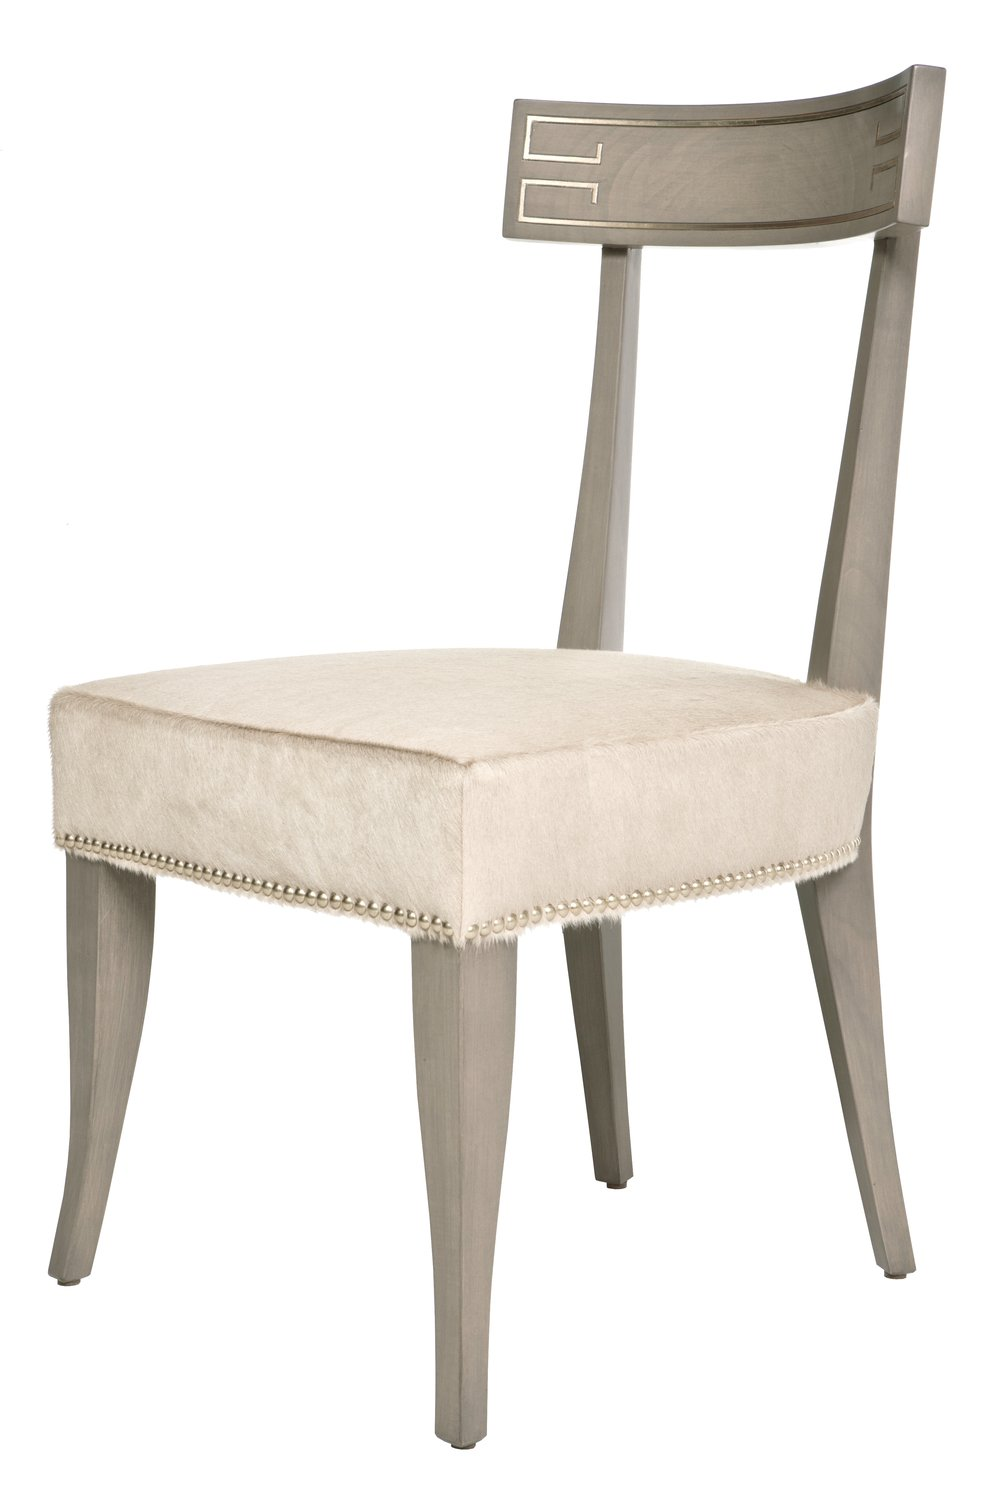 ZELIA CHAIR ANGLE - Version 2.jpg